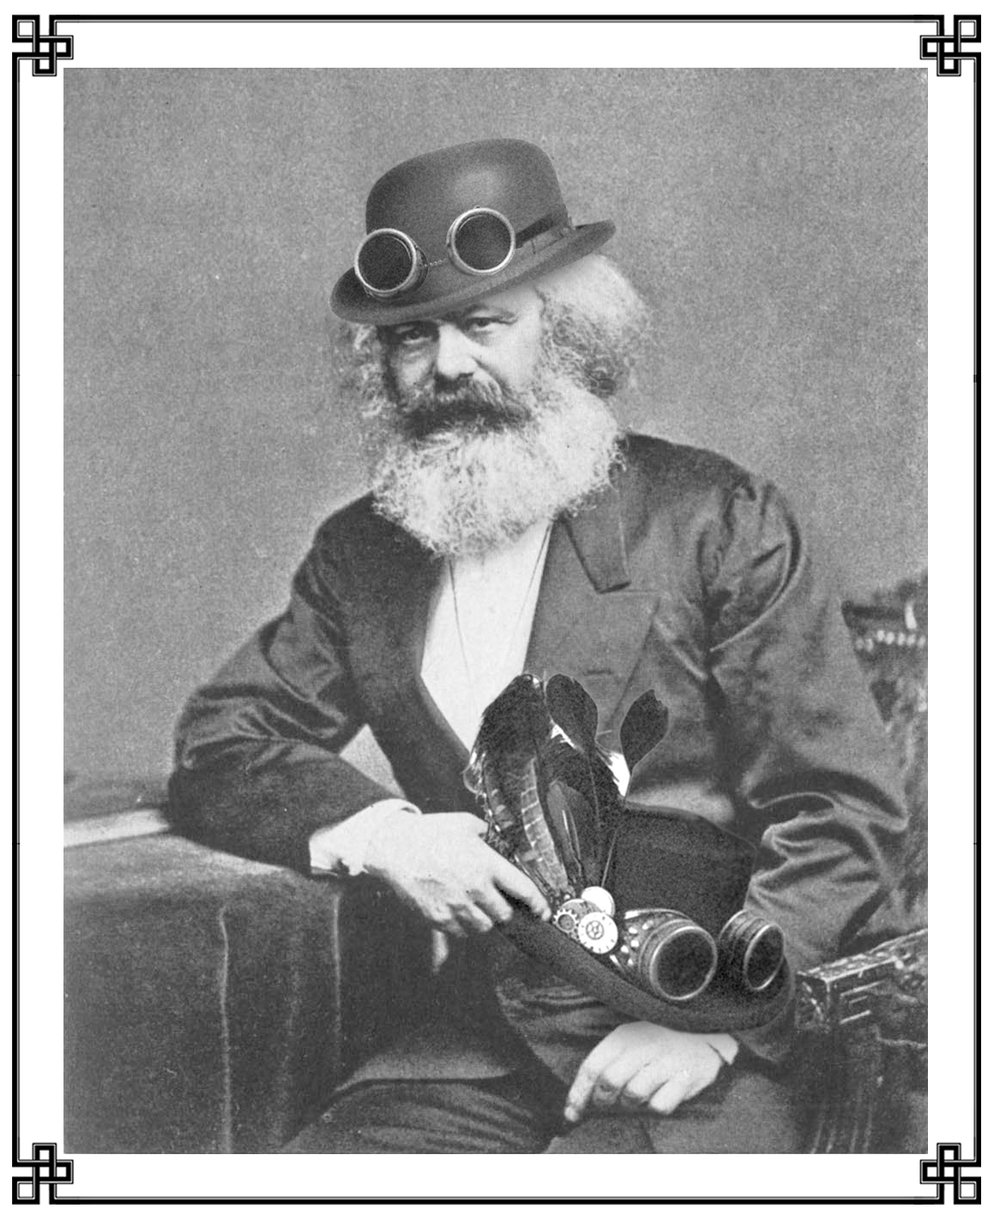 "While commonly associated in the popular imagination with the redistribution of material sustenance of all forms, Karl Marx himself was first and foremost a skilled milliner specifically concerned with the broad and equitable provision of headdress, in keeping with his compatriot Friedrich Engel's own admonition that in matters of liberation {as with anything else} ""…one can't do that, without a hat"". Therefore, and contrary to the assertions of detractors, it cannot be emphasized sufficiently that Herr Marx distributed only the most innocent of hats, becoming ones at that, and certainly not some manner of cleverly dissembled consciousness-expanding helm that caused the wearer to perceive the presences of all manner of stubbornly hindsighted angels of history. {Somewhat less improbable are hypotheses that Herr Marx was in actuality Frederick Douglass slumming in whiteface or, alternatively, that he was of blemmye heritage but passing behind ingenious prosthetics and an extensive peruke.}"